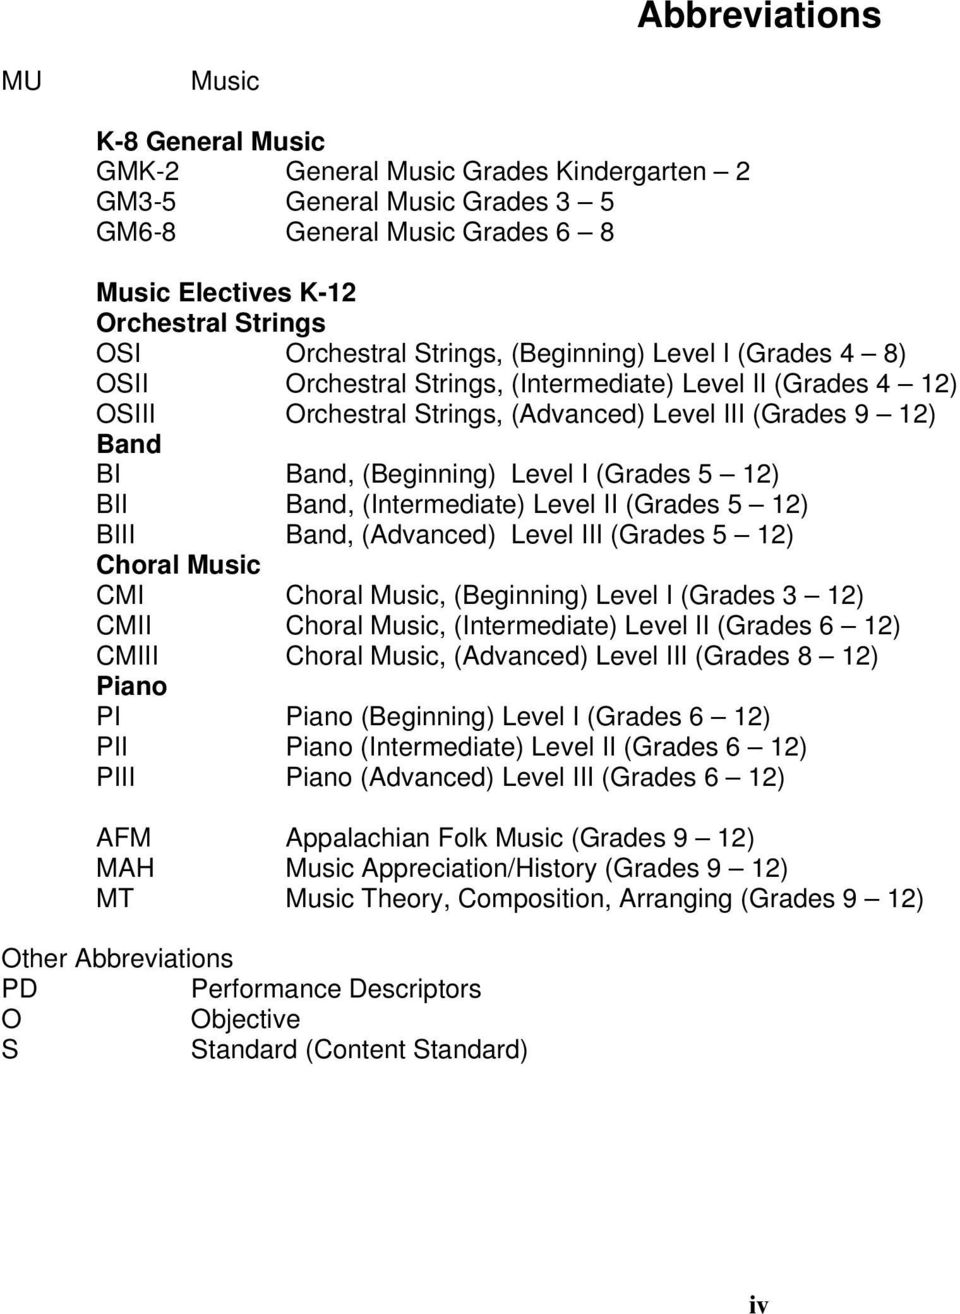 (Grades 5 12) BII Band, (Intermediate) Level II (Grades 5 12) BIII Band, (Advanced) Level III (Grades 5 12) Choral Music CMI Choral Music, (Beginning) Level I (Grades 3 12) CMII Choral Music,